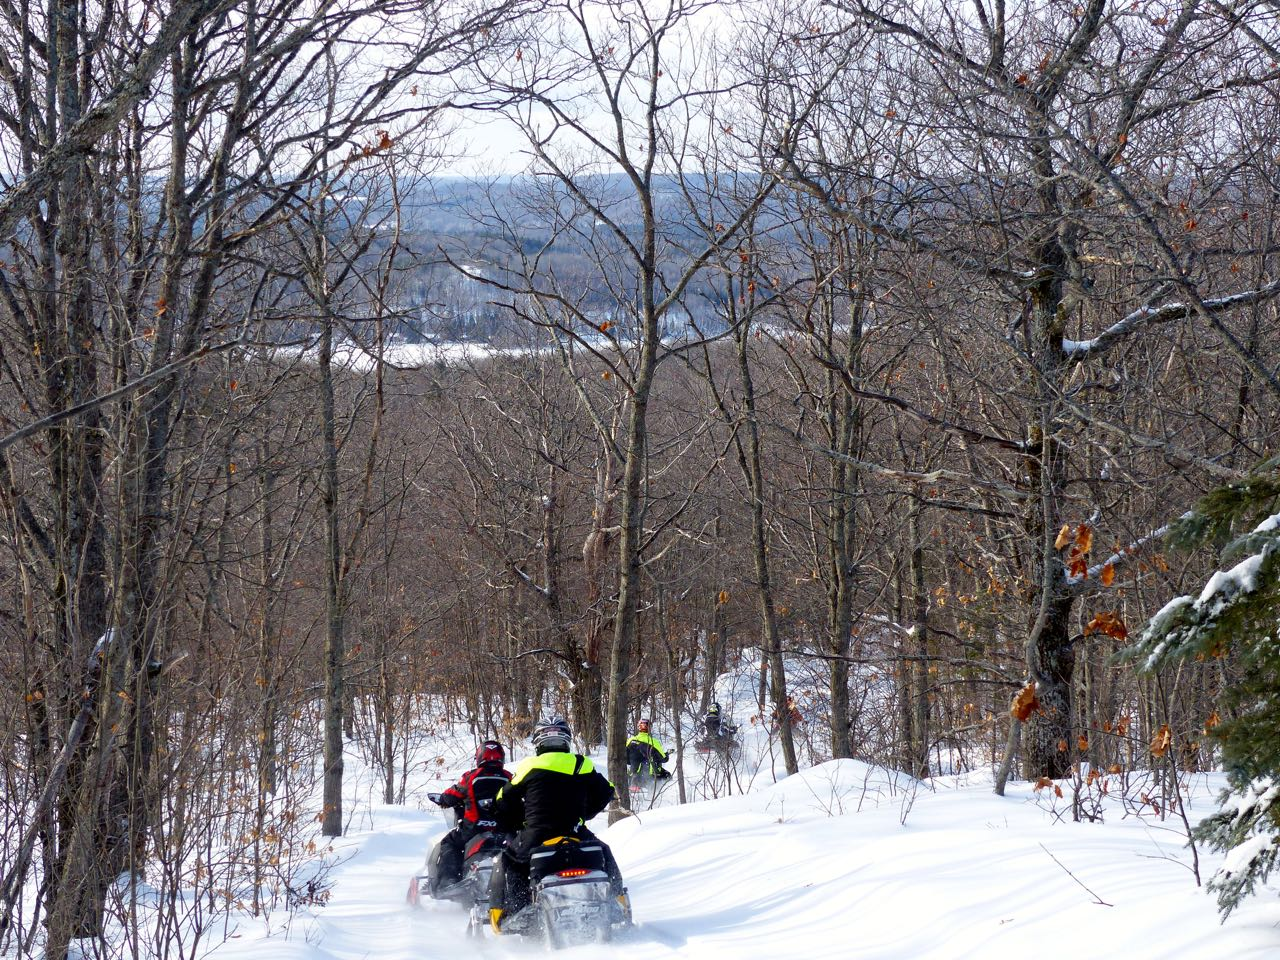 Ski doo riders on OFSC trail in Ontario's Highlands near barry's bay